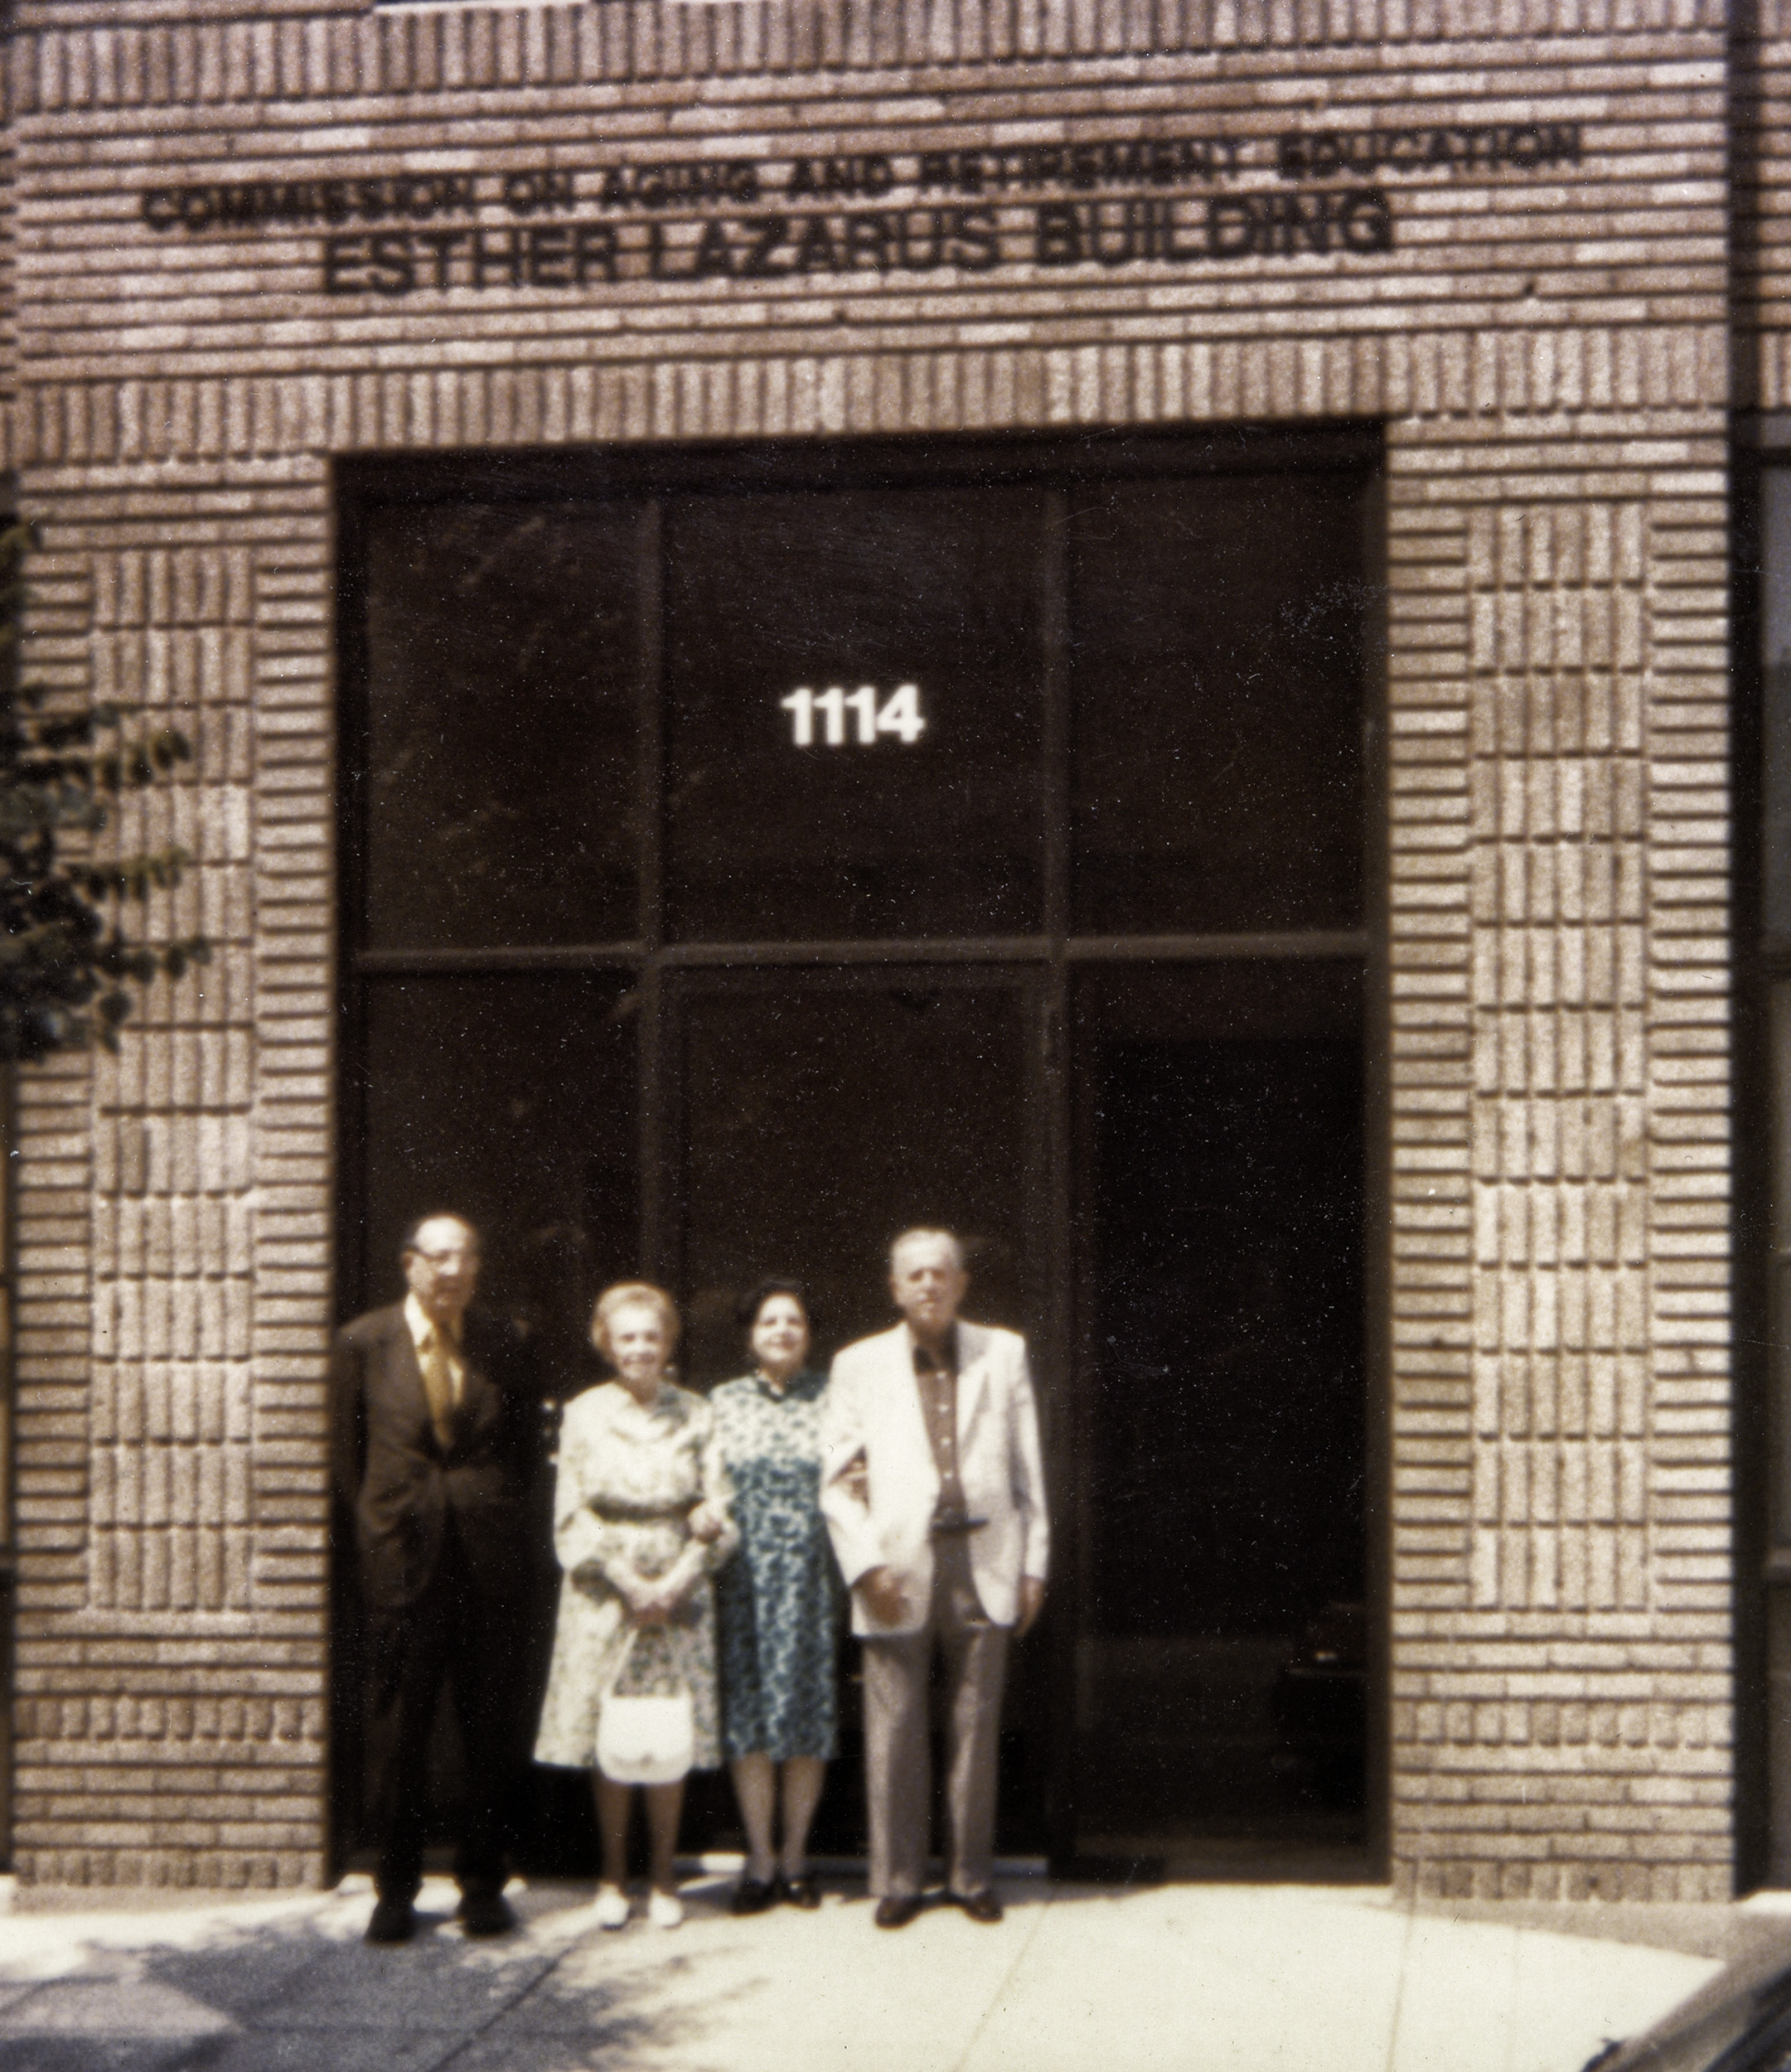 The Esther Lazarus Building on Cathedral Street in Baltimore